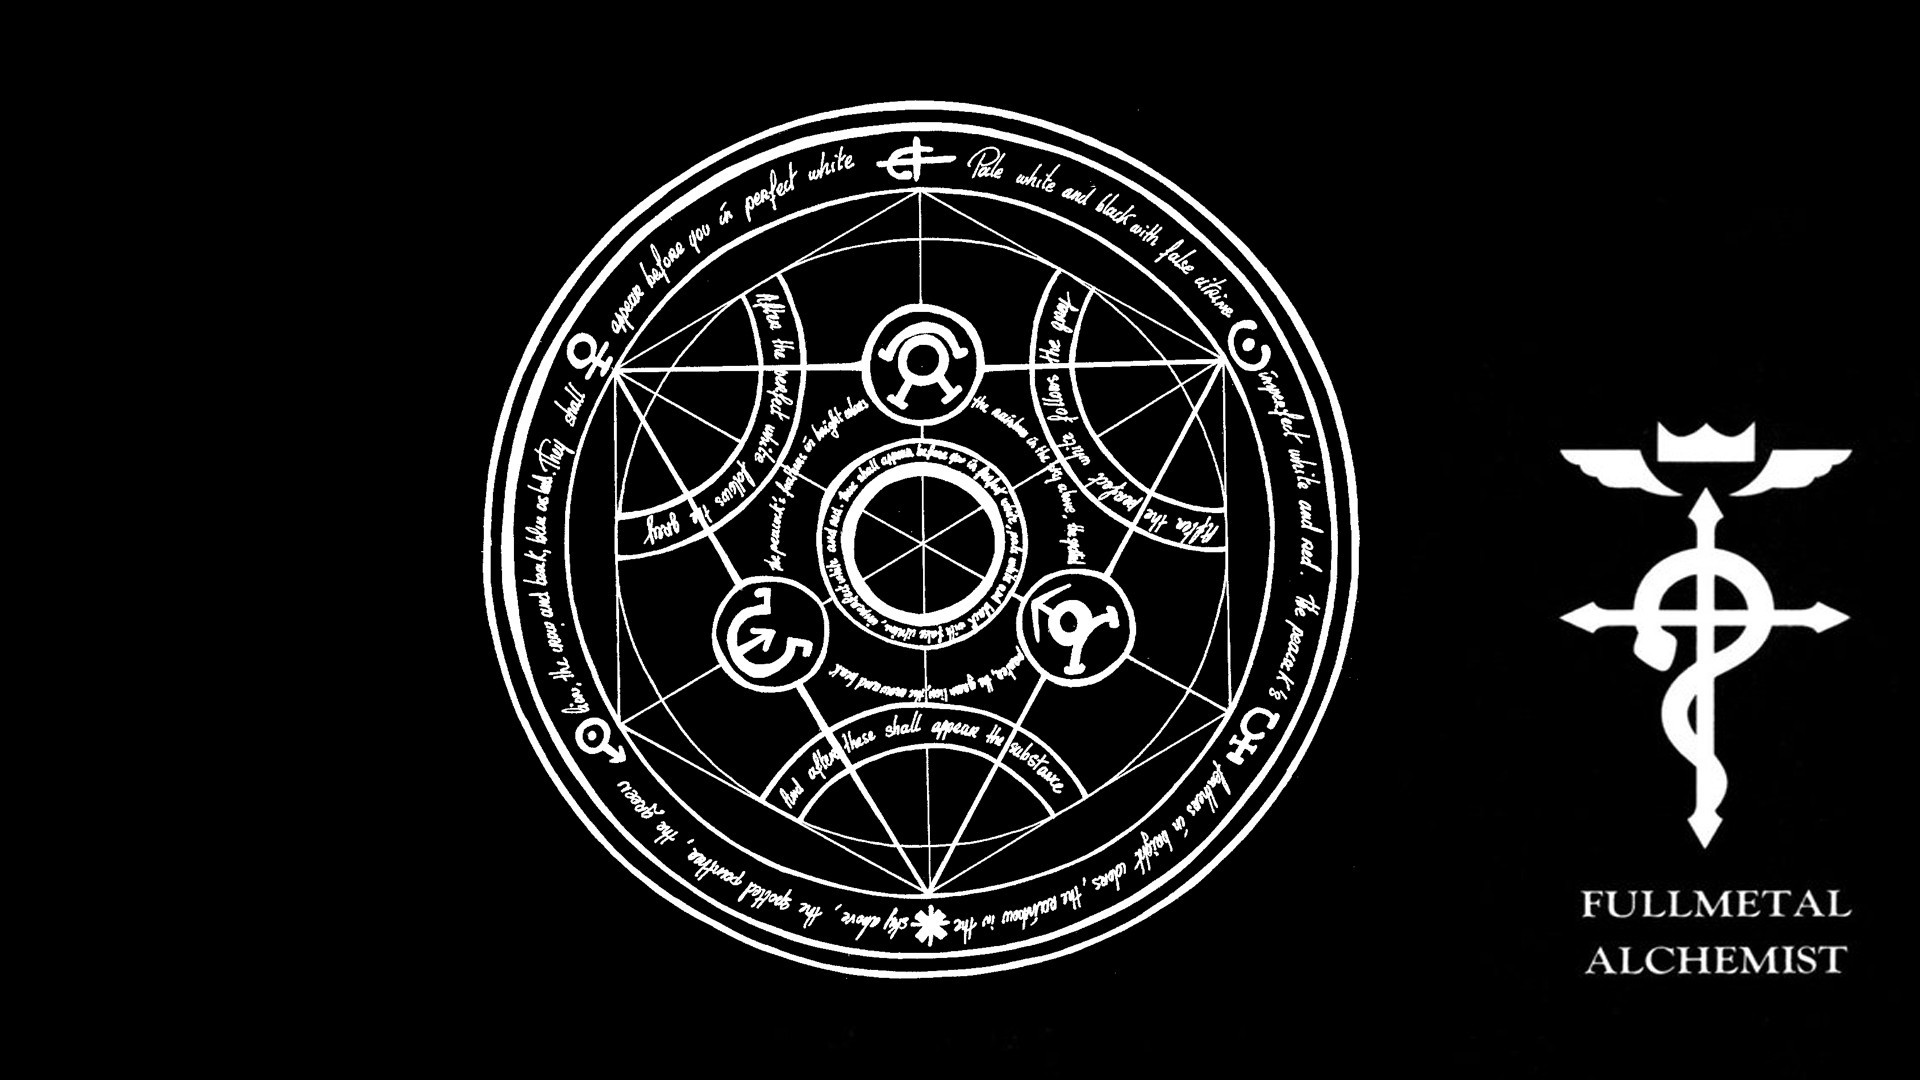 Fullmetal Alchemist Transmutation Circle Wallpaper Posted By Zoey